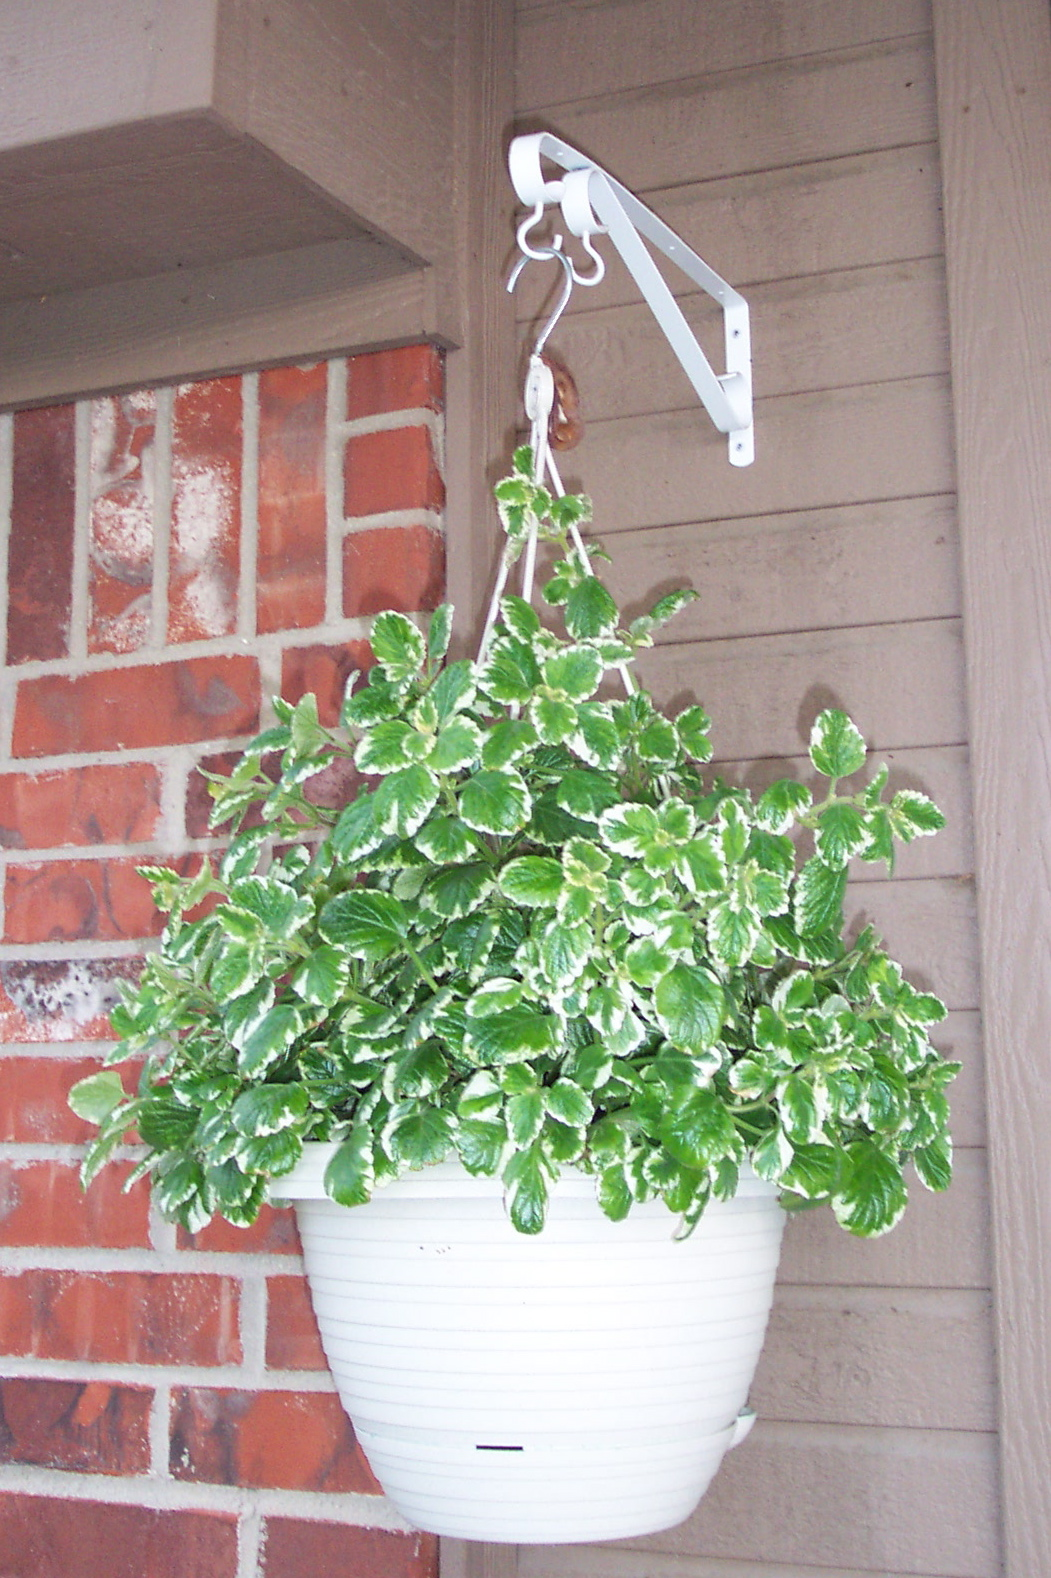 Flower Varieties For Hanging Baskets : File unidentified plant in hanging basket g wikimedia